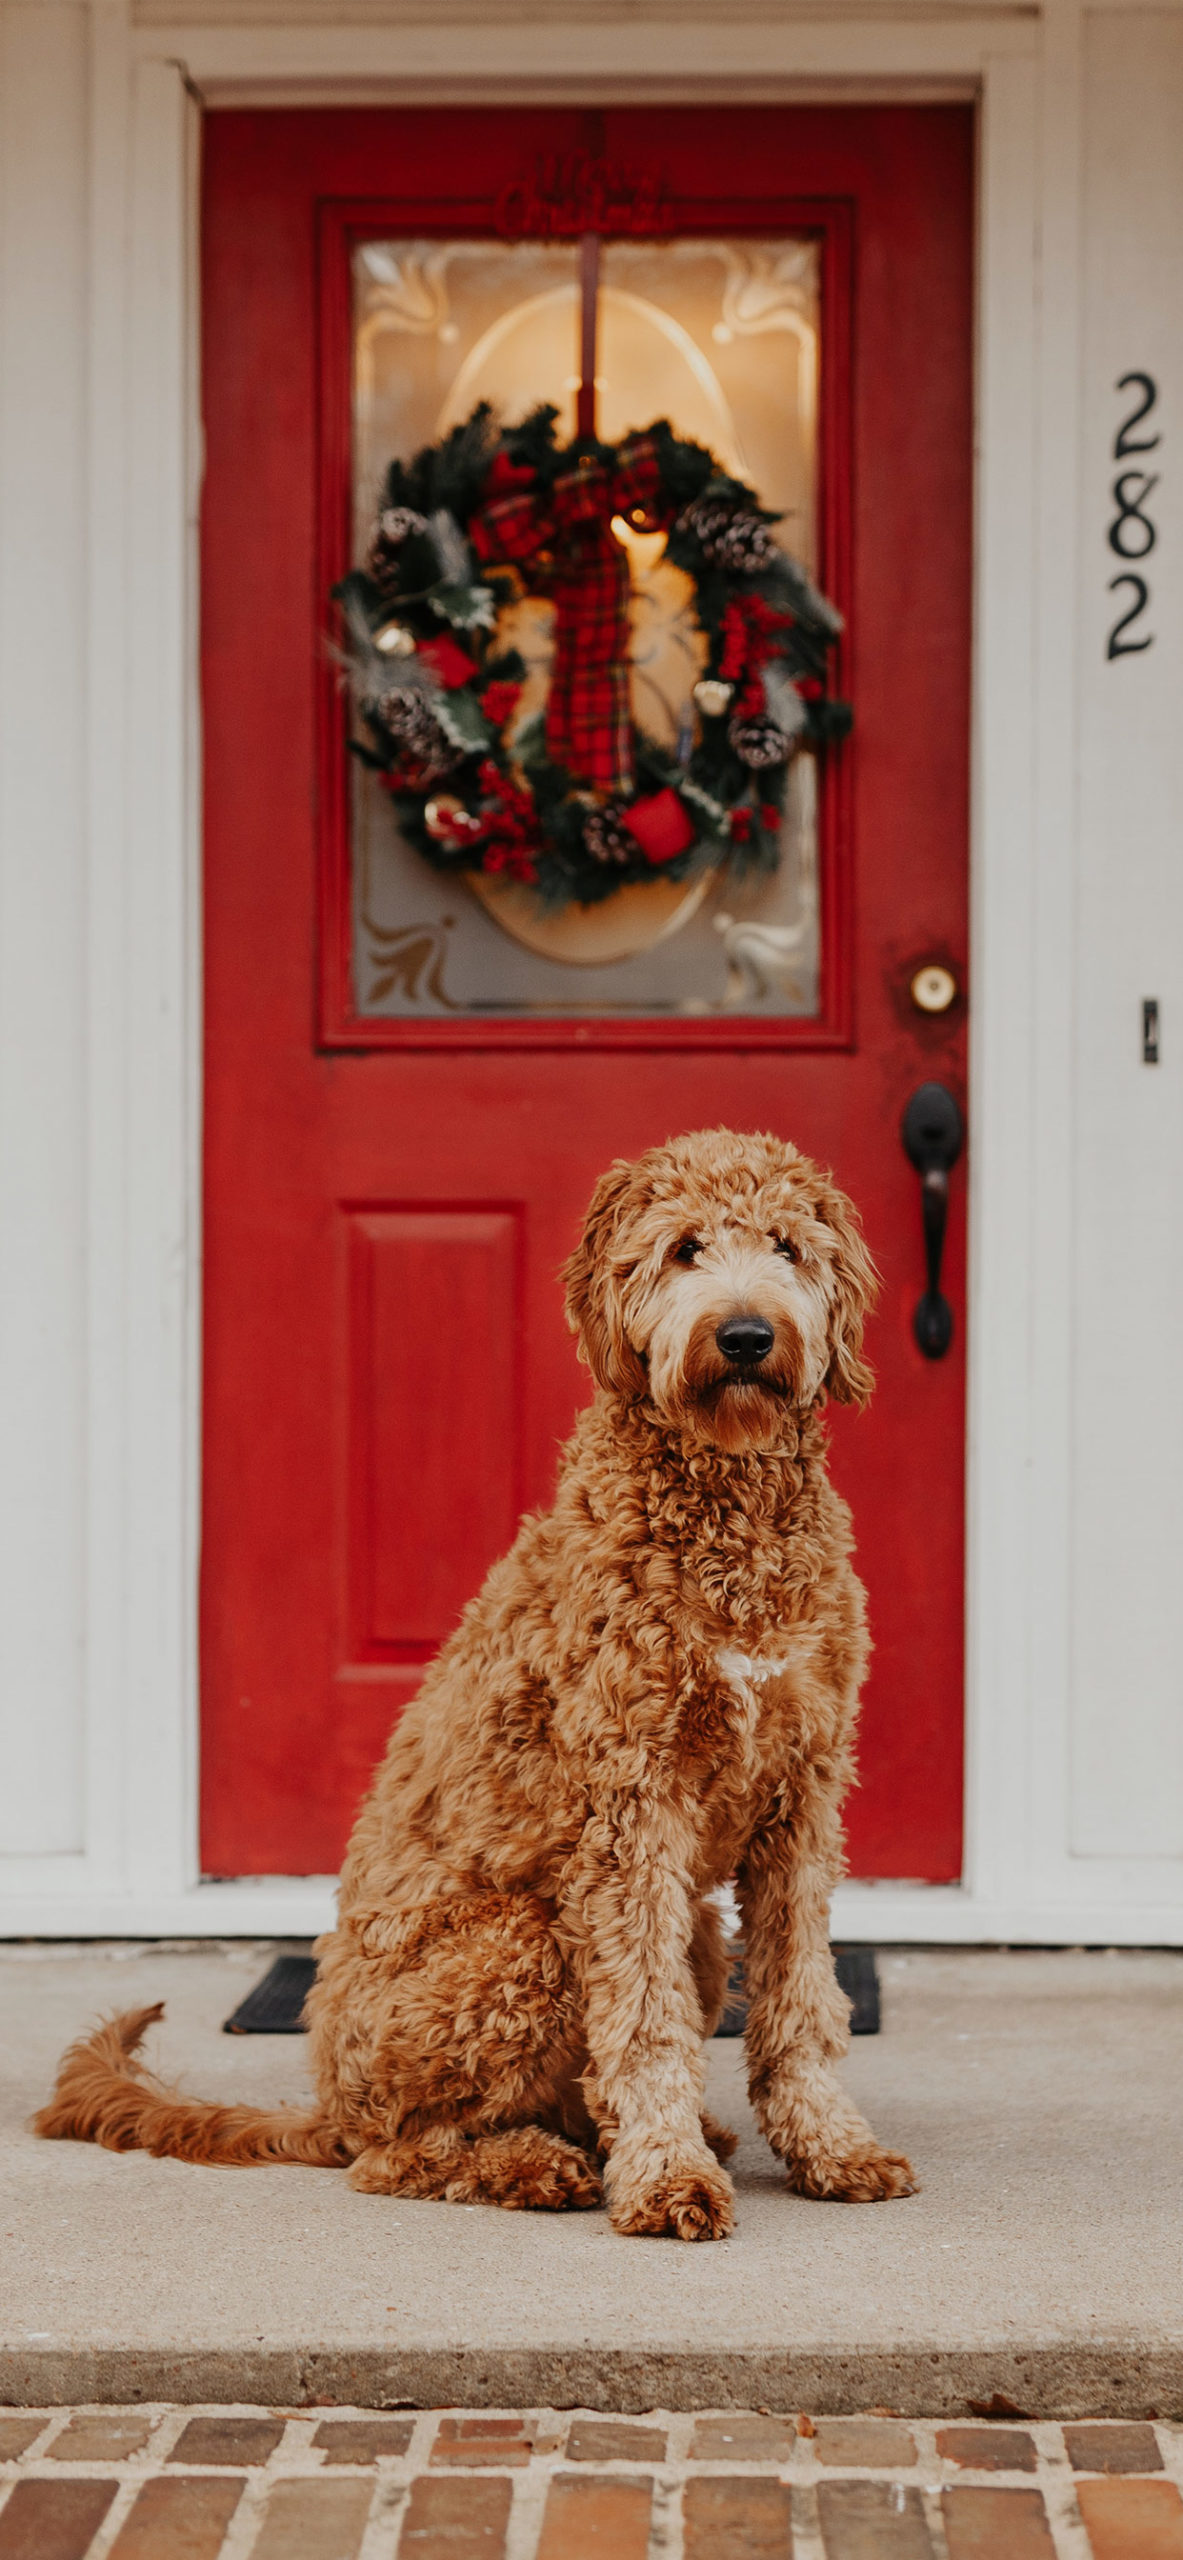 iphone Wallpapers christmas dog door scaled Christmas Dog